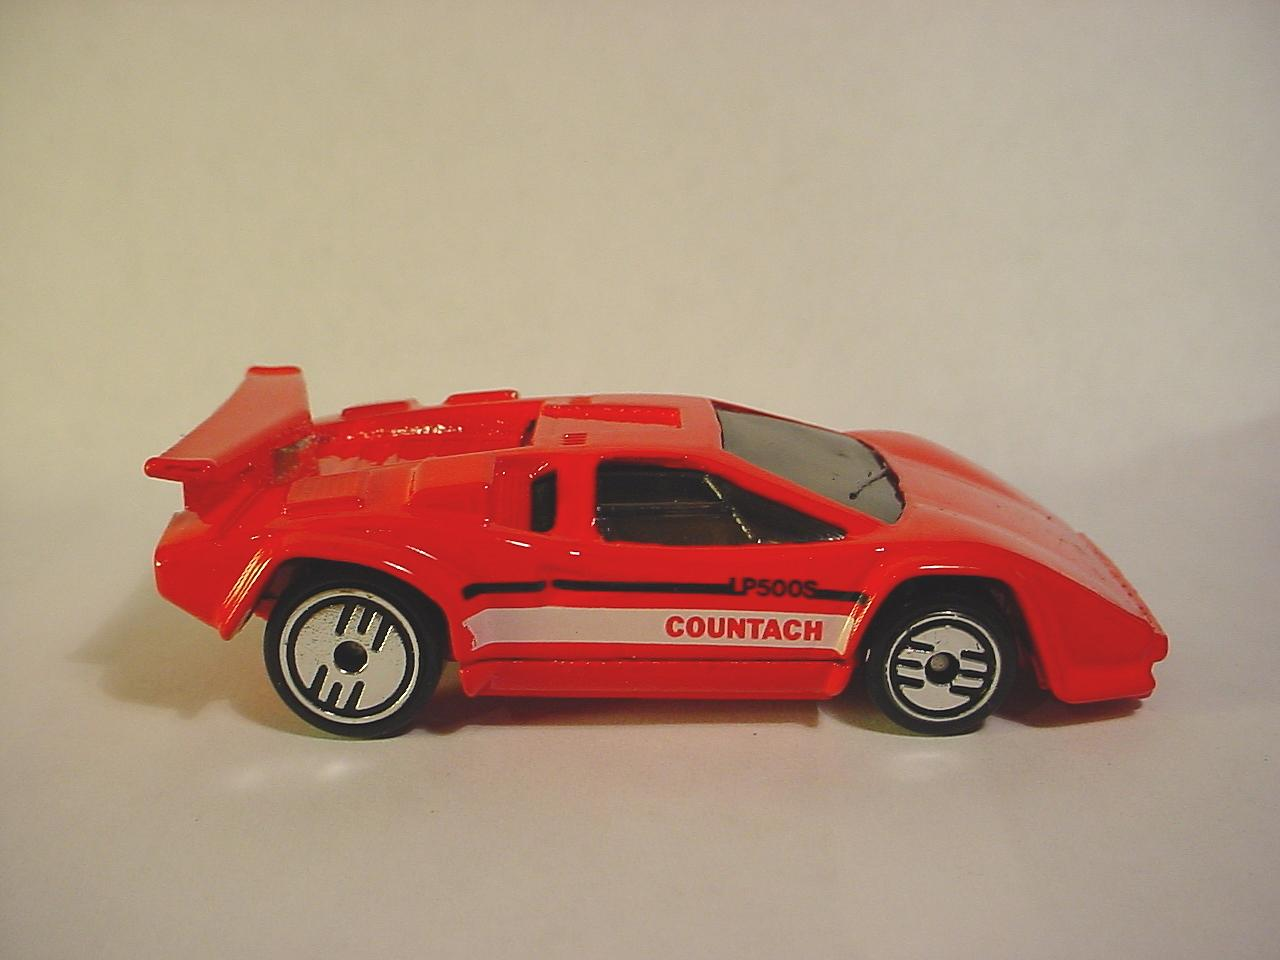 1993 lamborghini countach 4553 int hot wheels online variation guide wiki. Black Bedroom Furniture Sets. Home Design Ideas